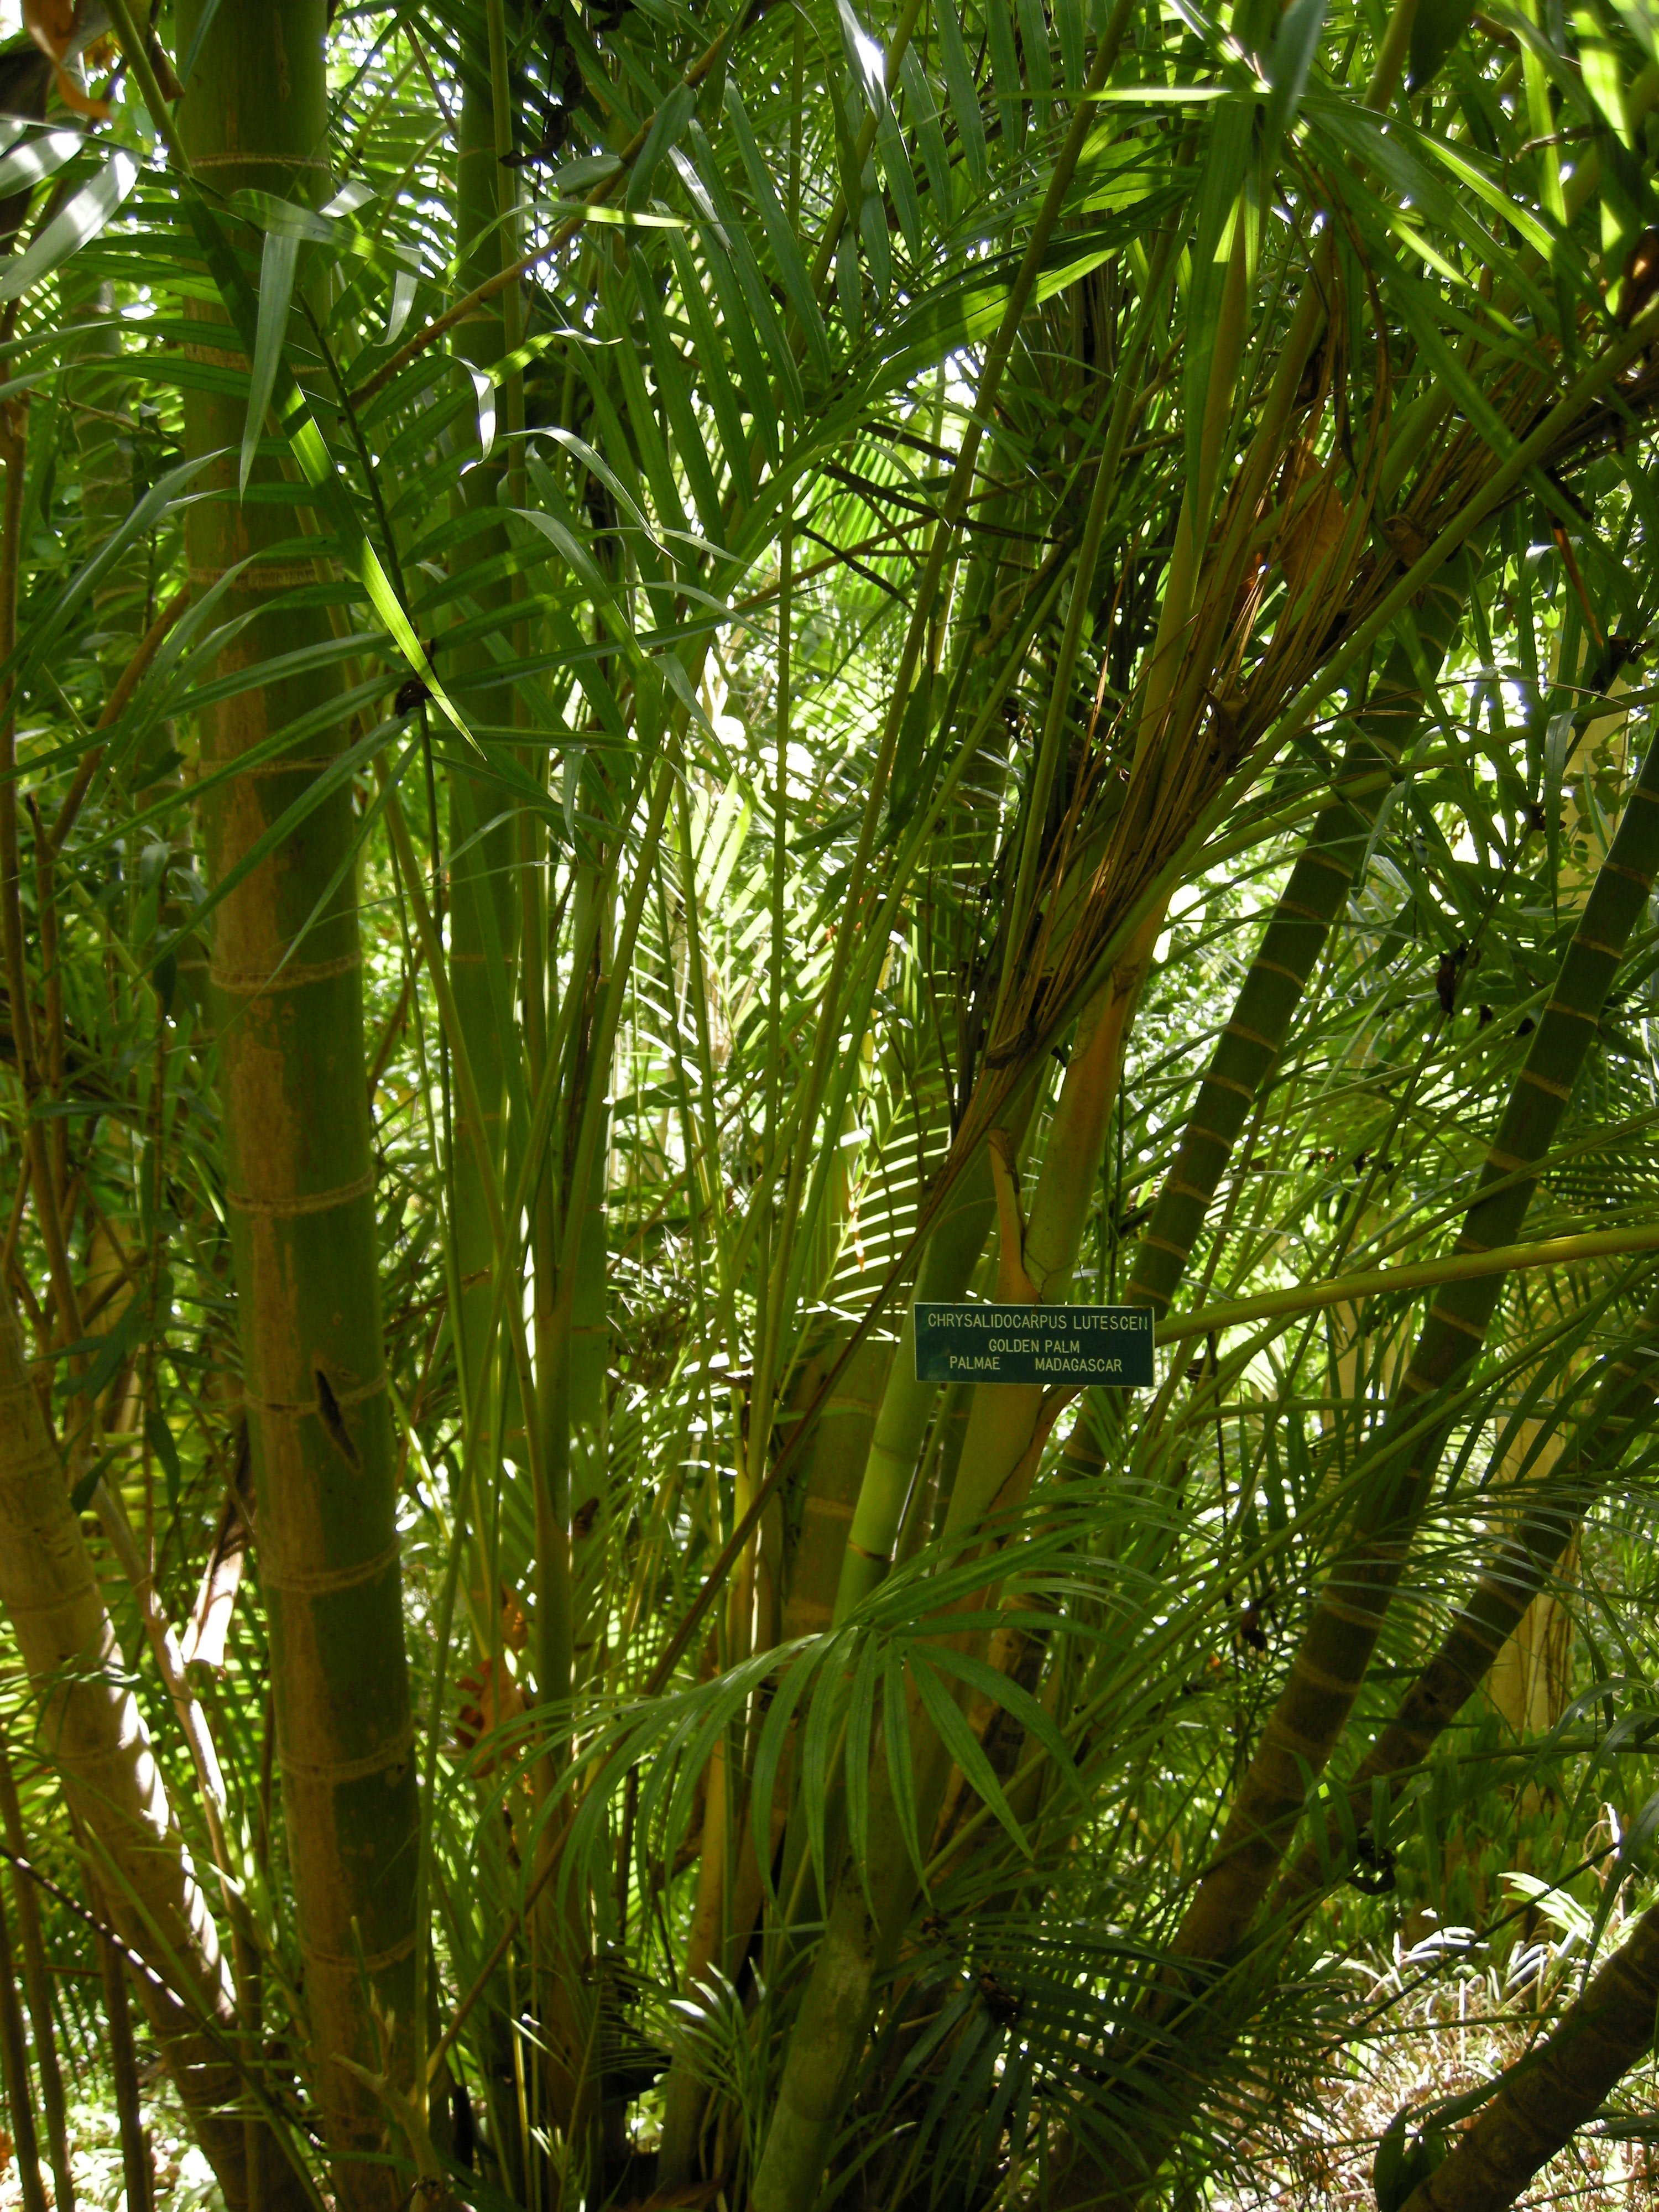 Dypsis Lutescens Wikipedia Dypsis